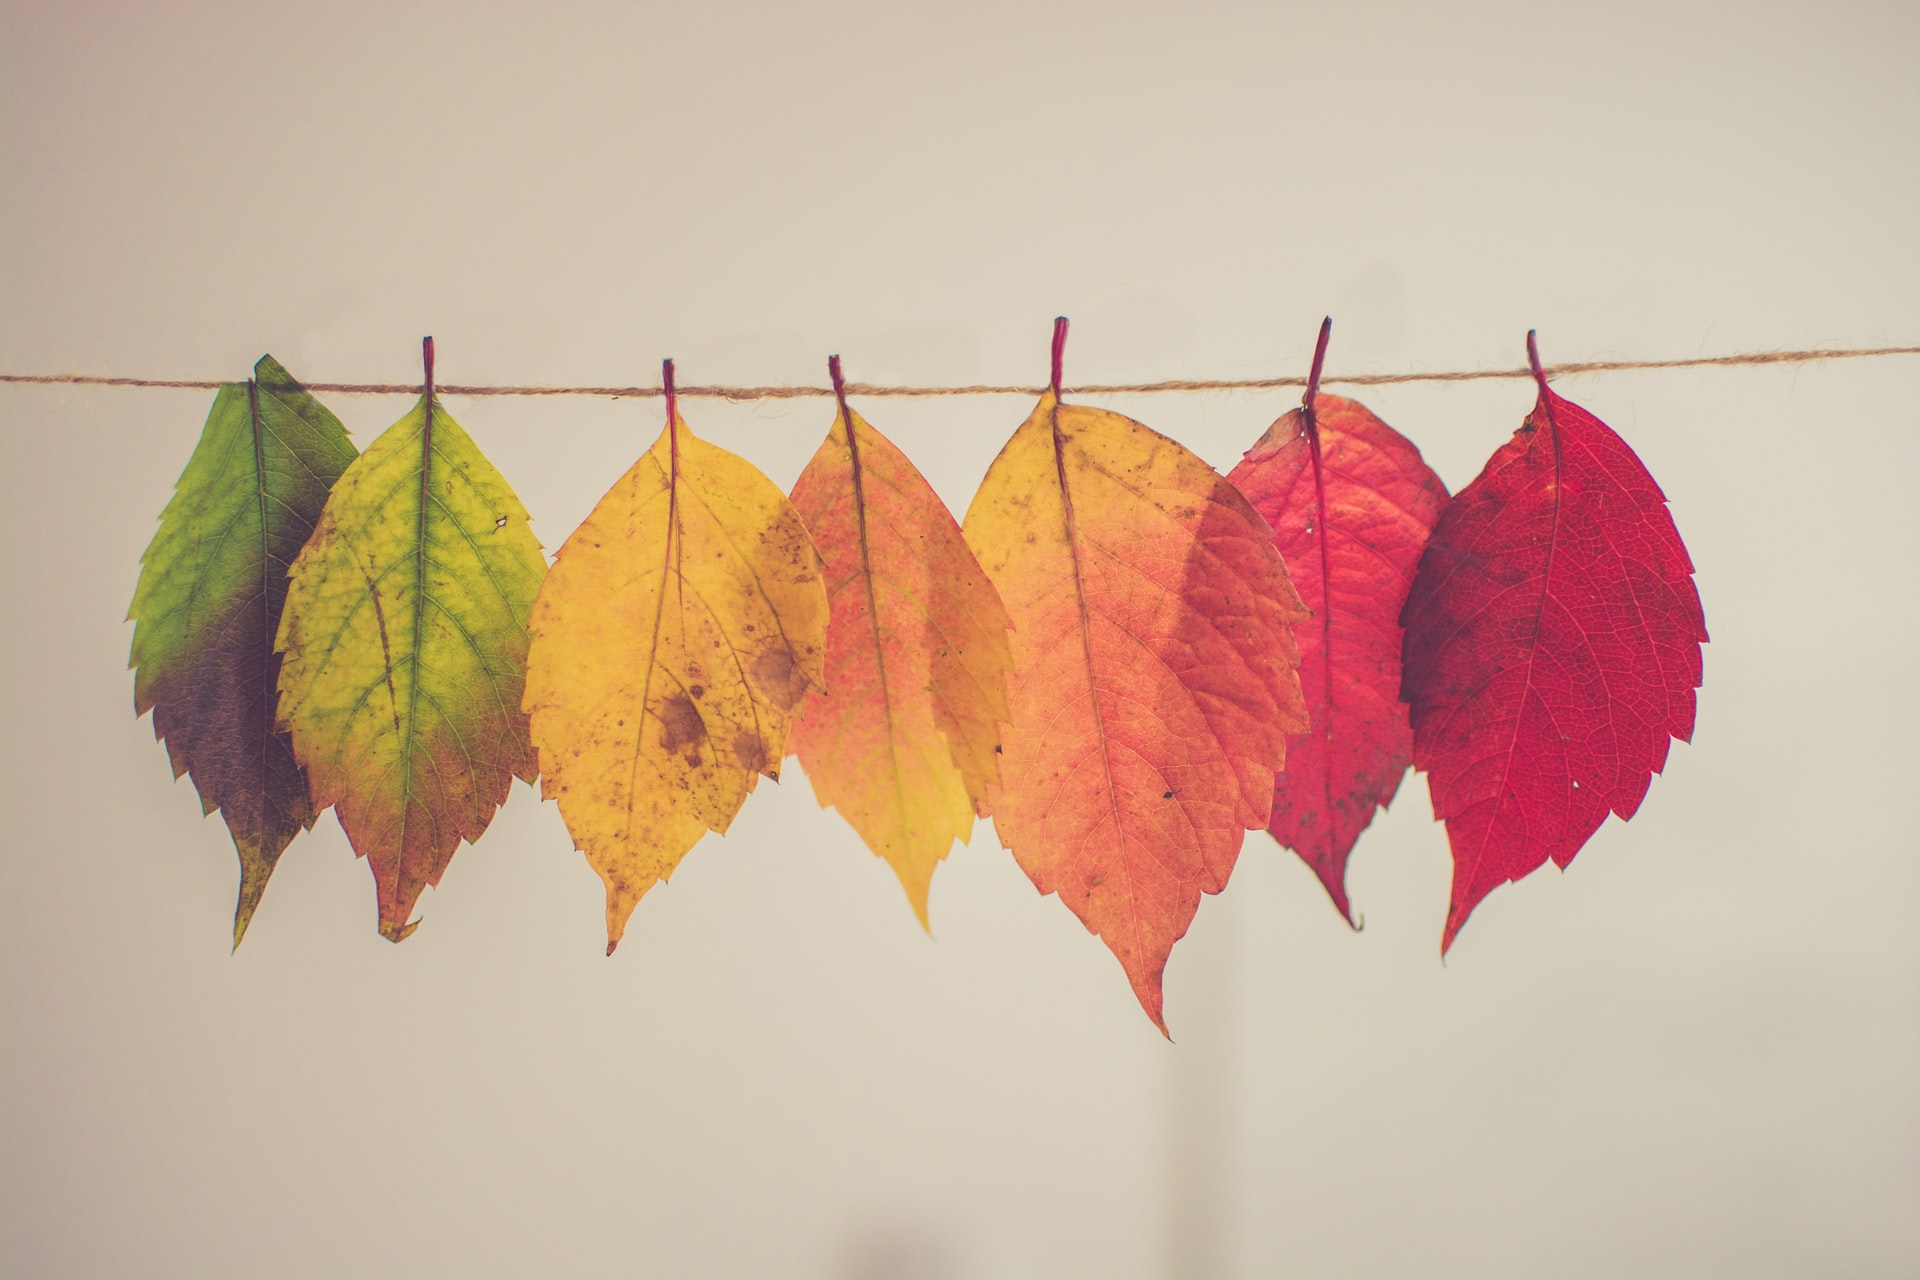 Leaves in different shades and colors due to season change